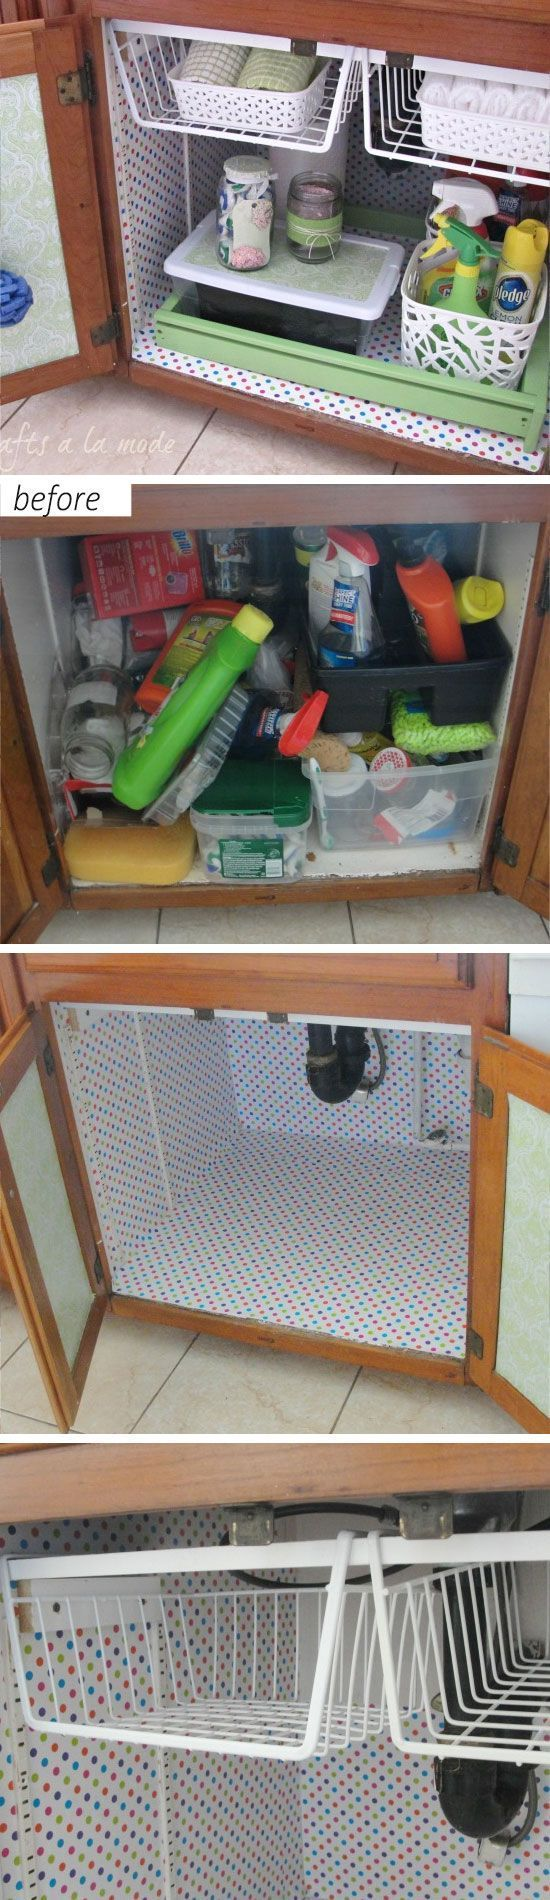 20 Easy Storage Ideas for Small Spaces